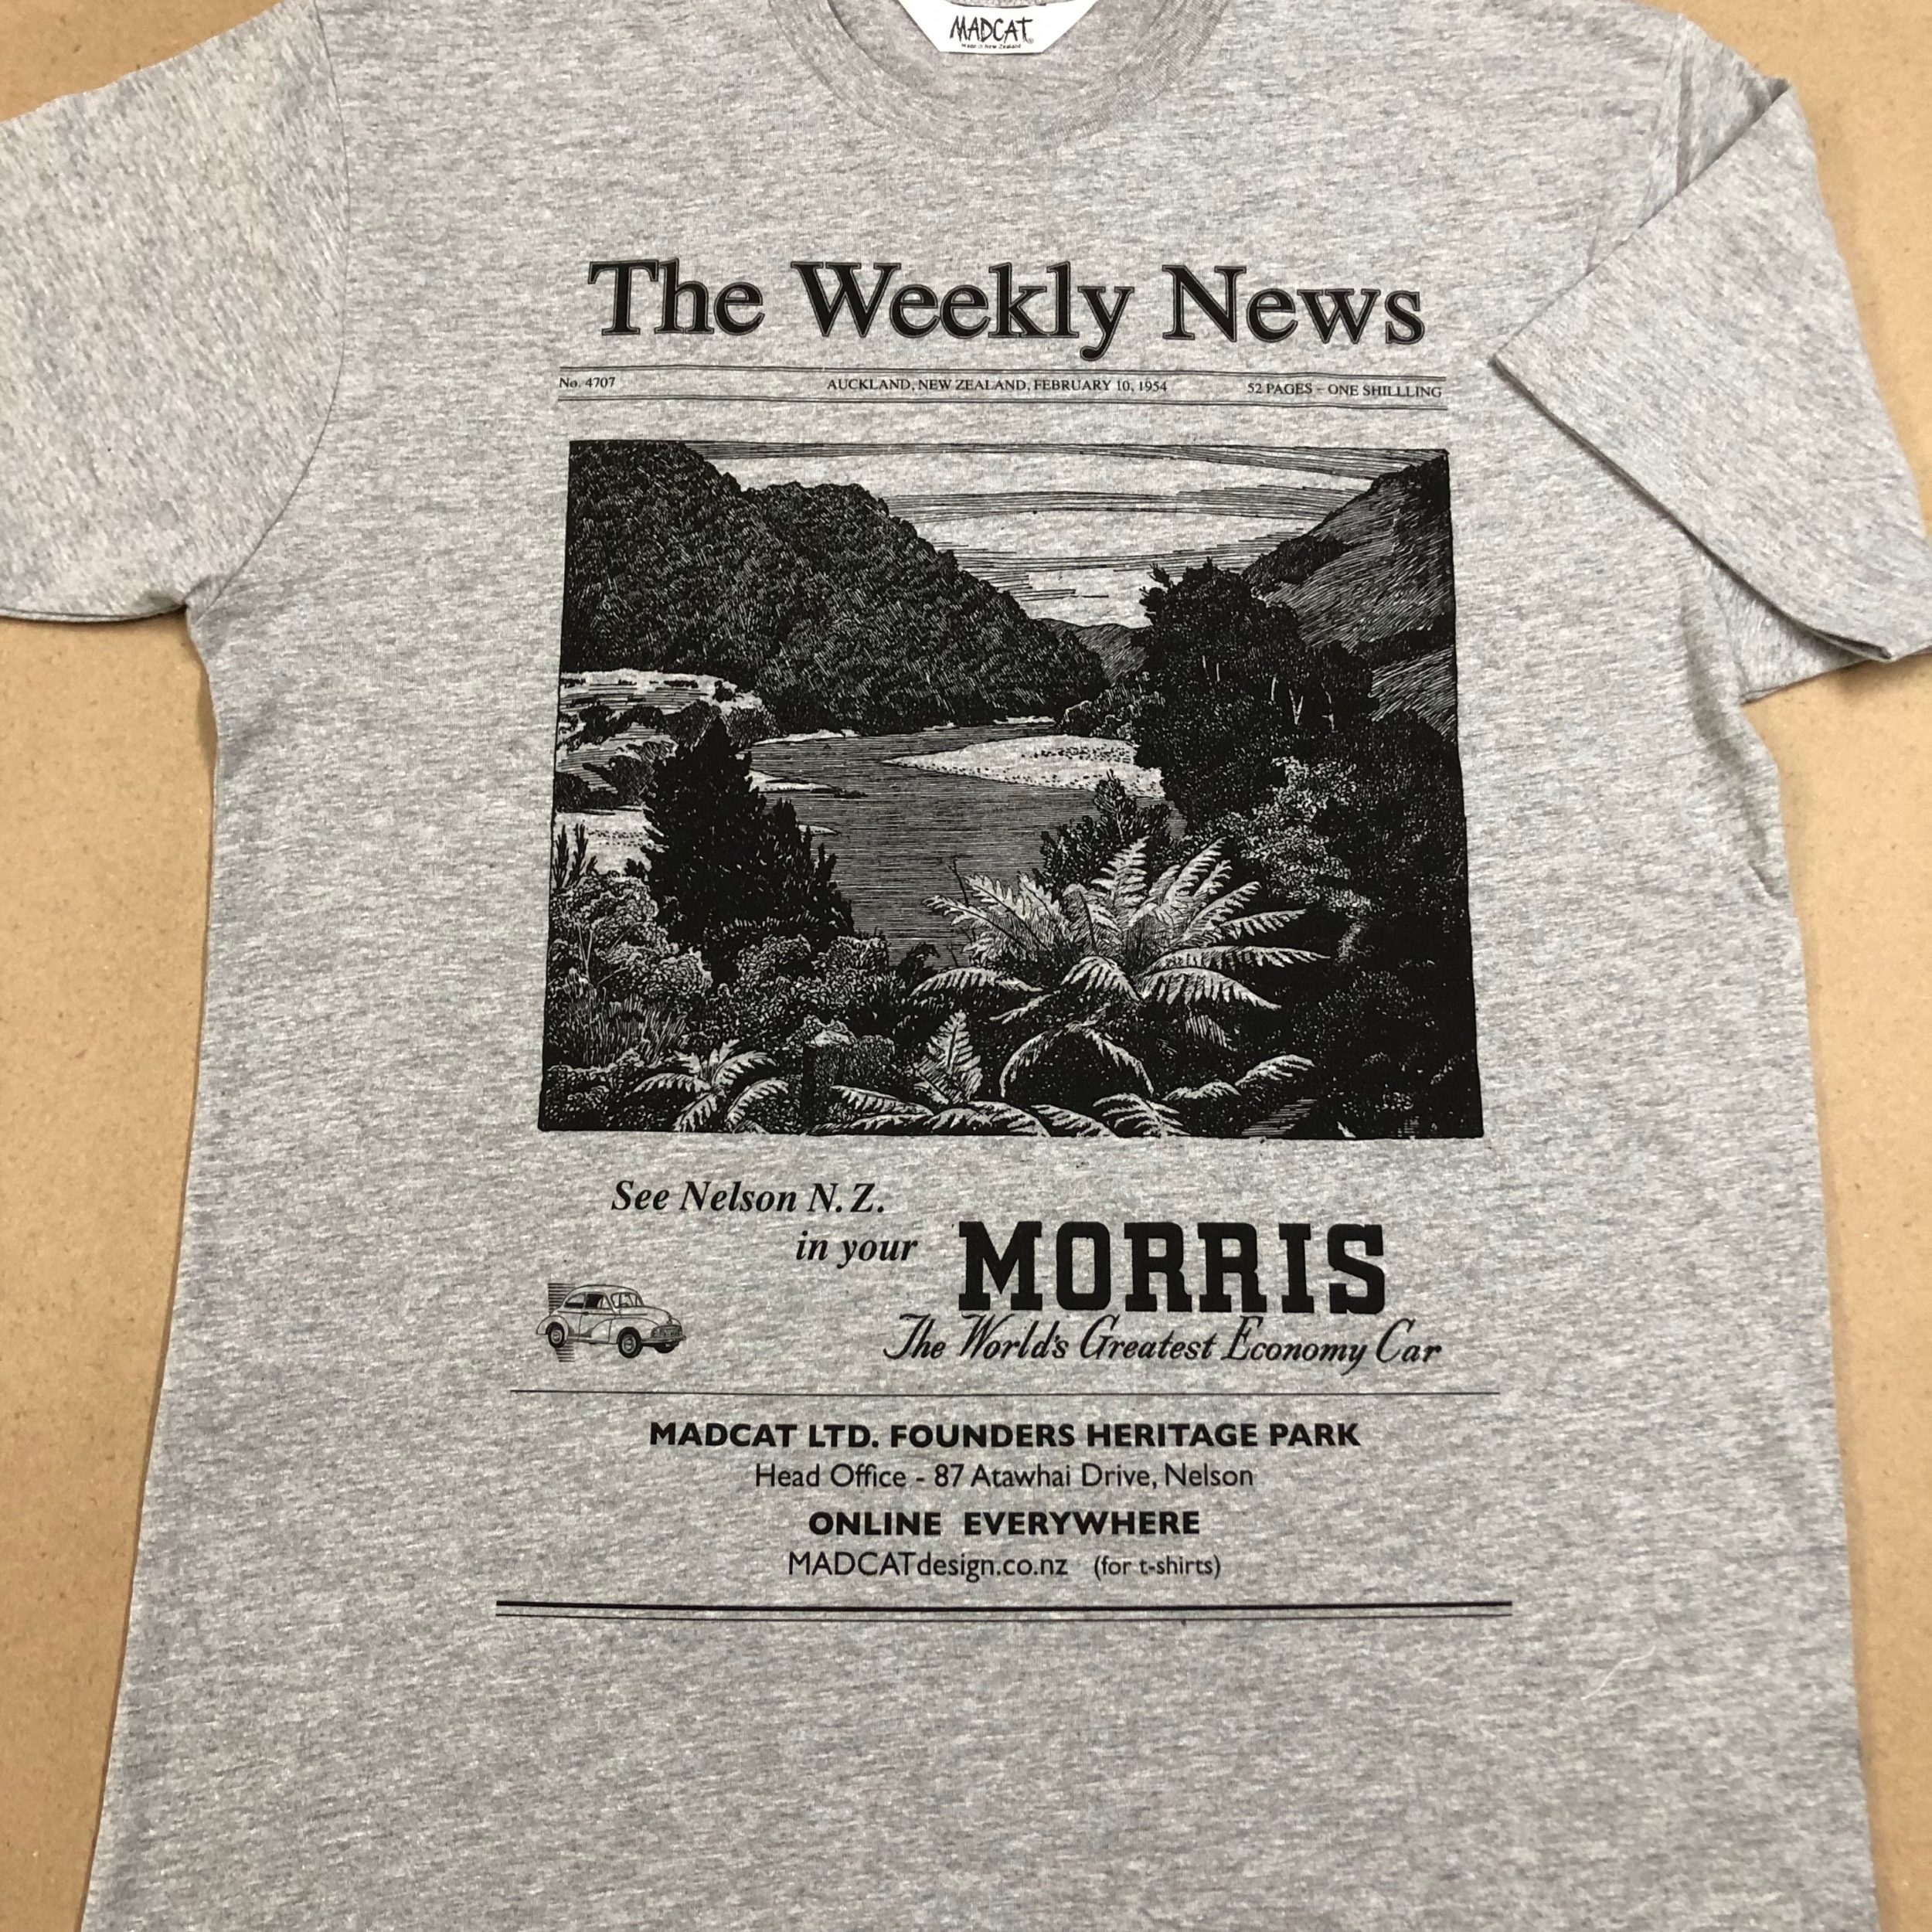 The Weekly News T shirt for Men, Grey Marl